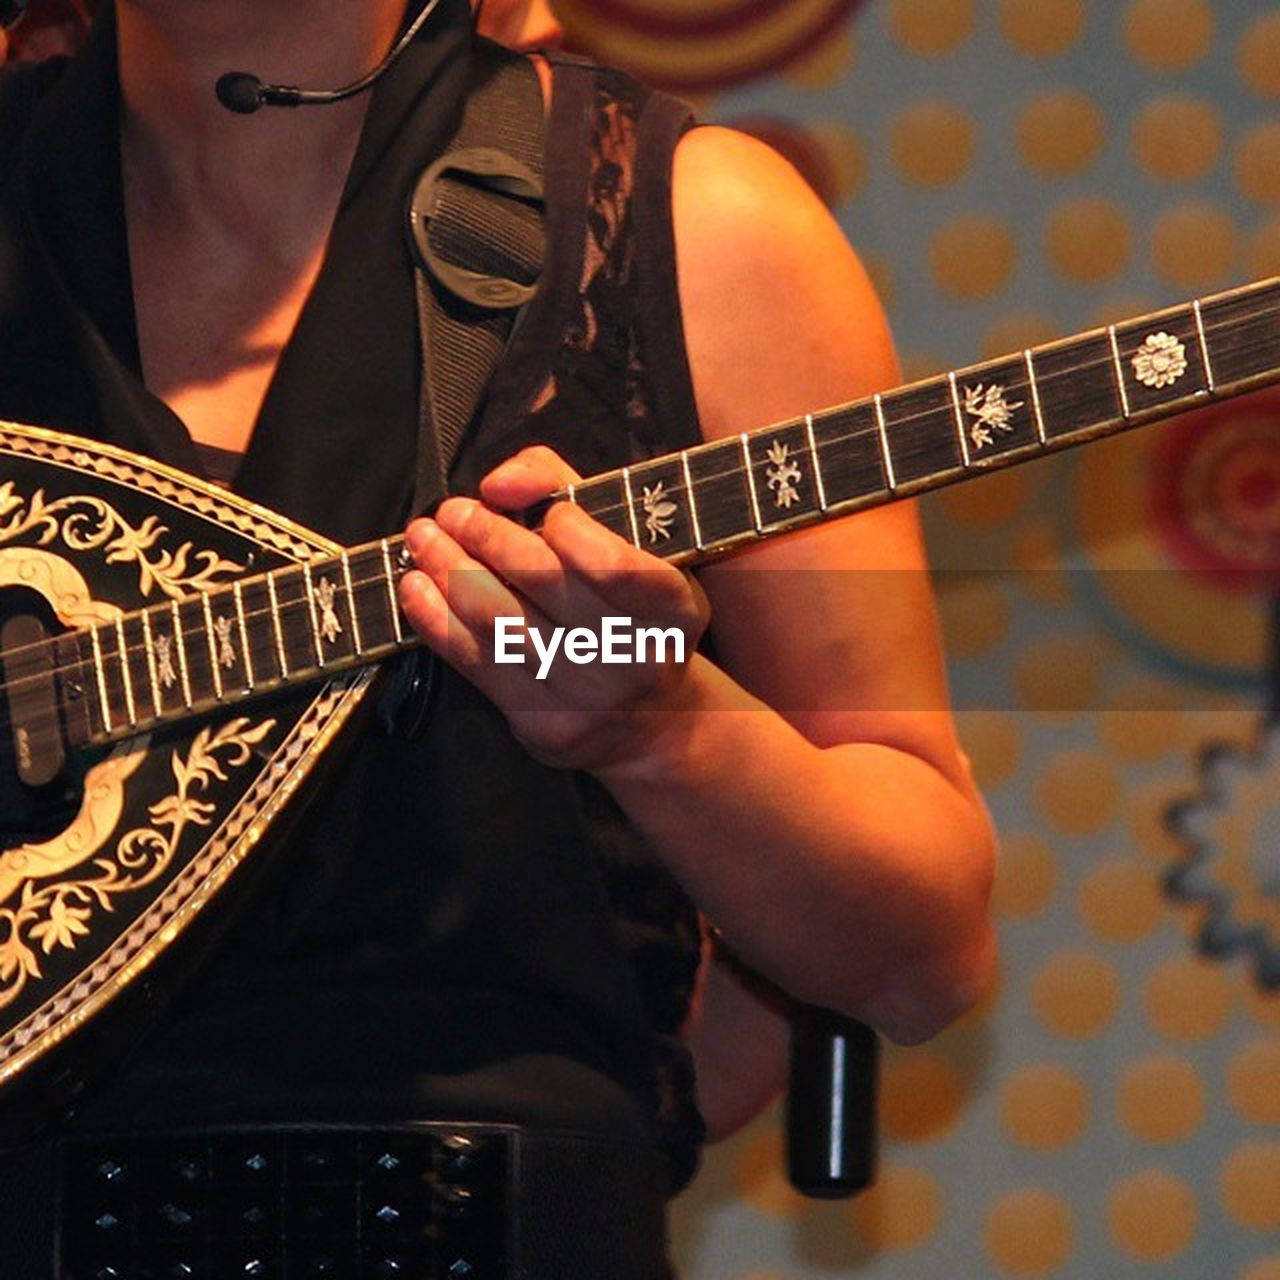 musical instrument, music, midsection, guitar, playing, real people, indoors, one person, skill, plucking an instrument, holding, arts culture and entertainment, lifestyles, leisure activity, occupation, electric guitar, musician, standing, musical instrument string, close-up, fretboard, human hand, day, adult, people, adults only